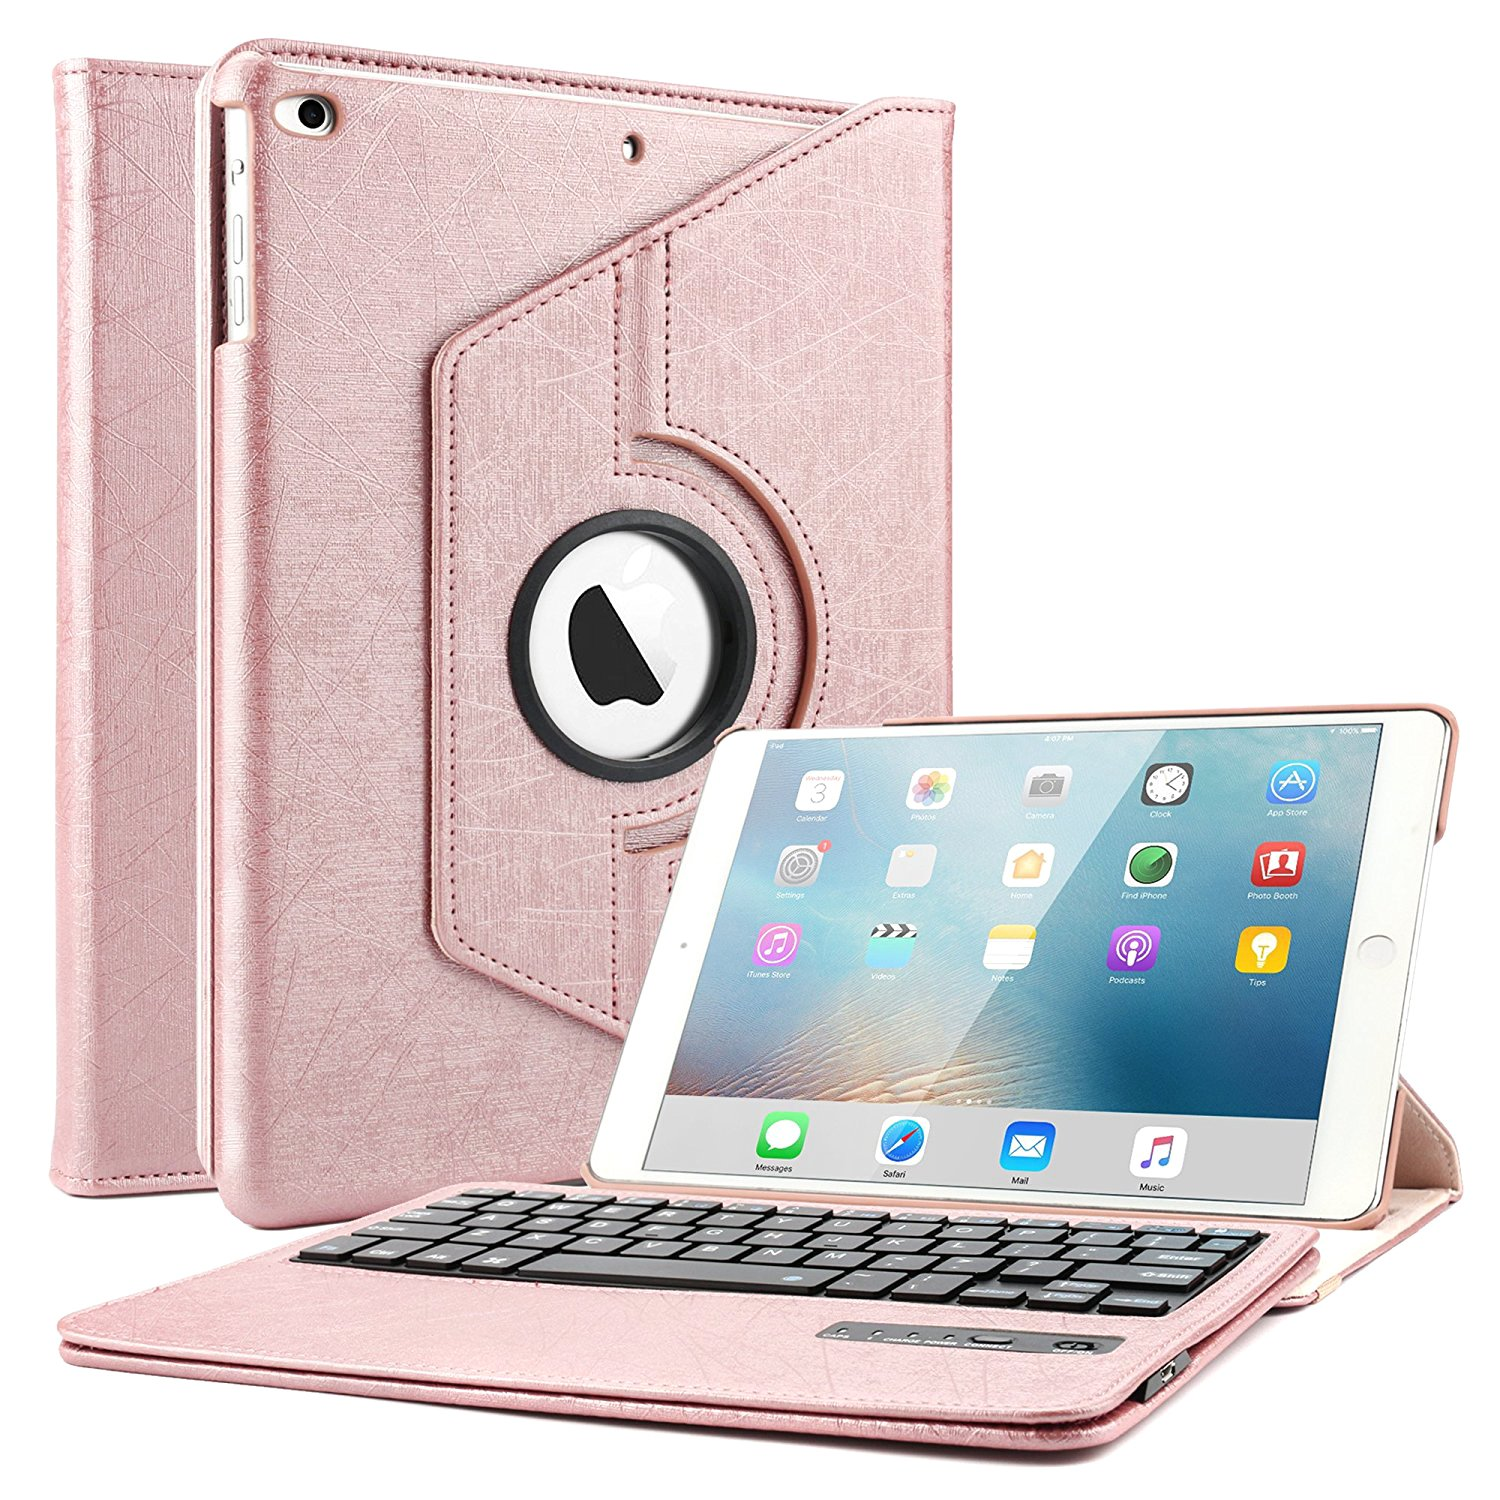 iPad 9.7 2018 2017 Keyboard Case, Boriyuan 360 Degree Rotating Stand PU Leather Smart Cover with Bluetooth Wireless Keyboard for Apple New iPad 2018 2017 iPad 9 7 inch - Rose Gold